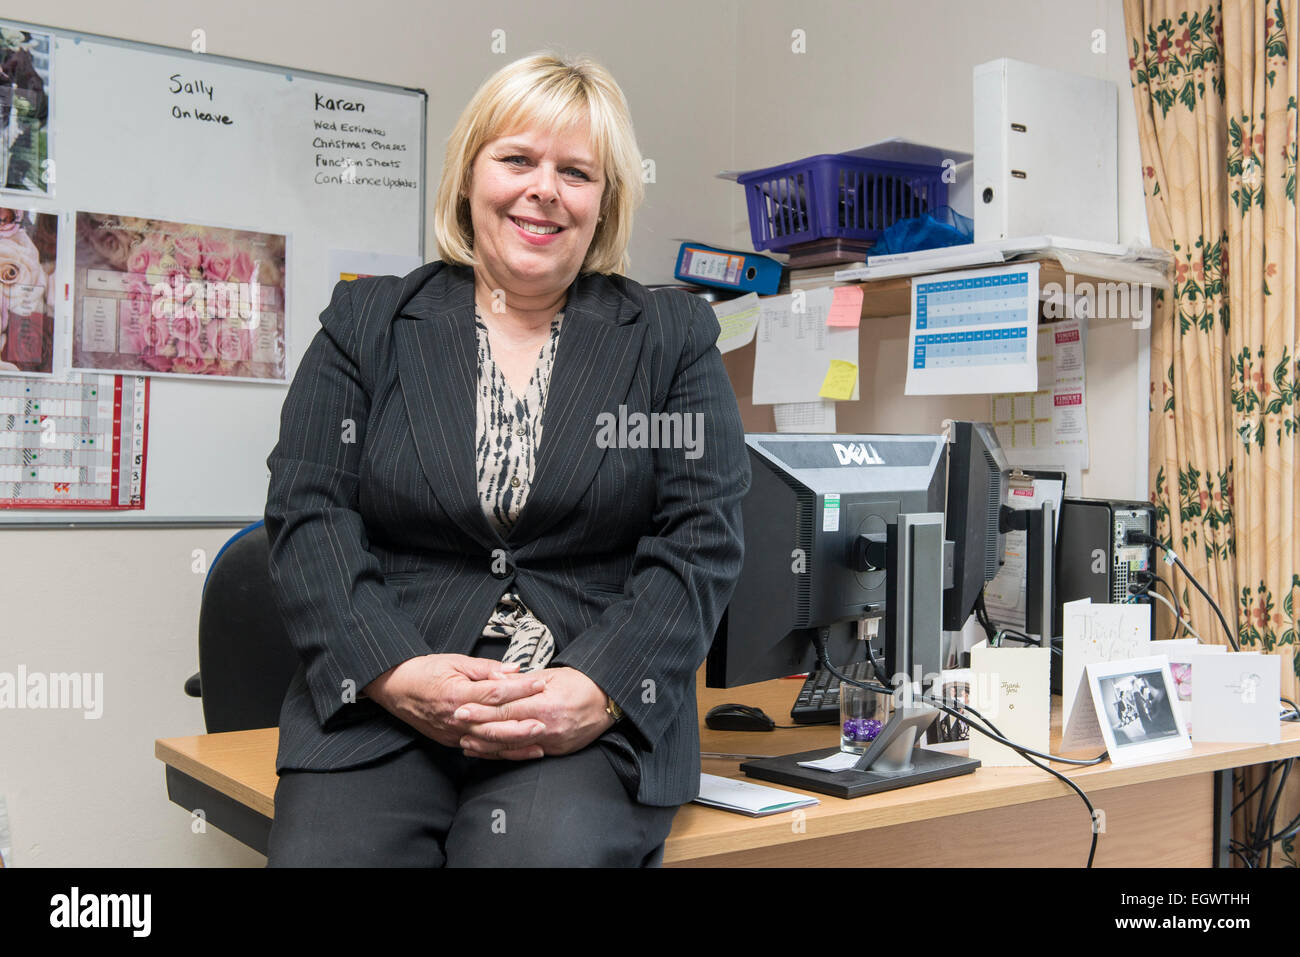 a business administrator office manager by her desk in a busy office environment managing aspects of a hotel and - Stock Image